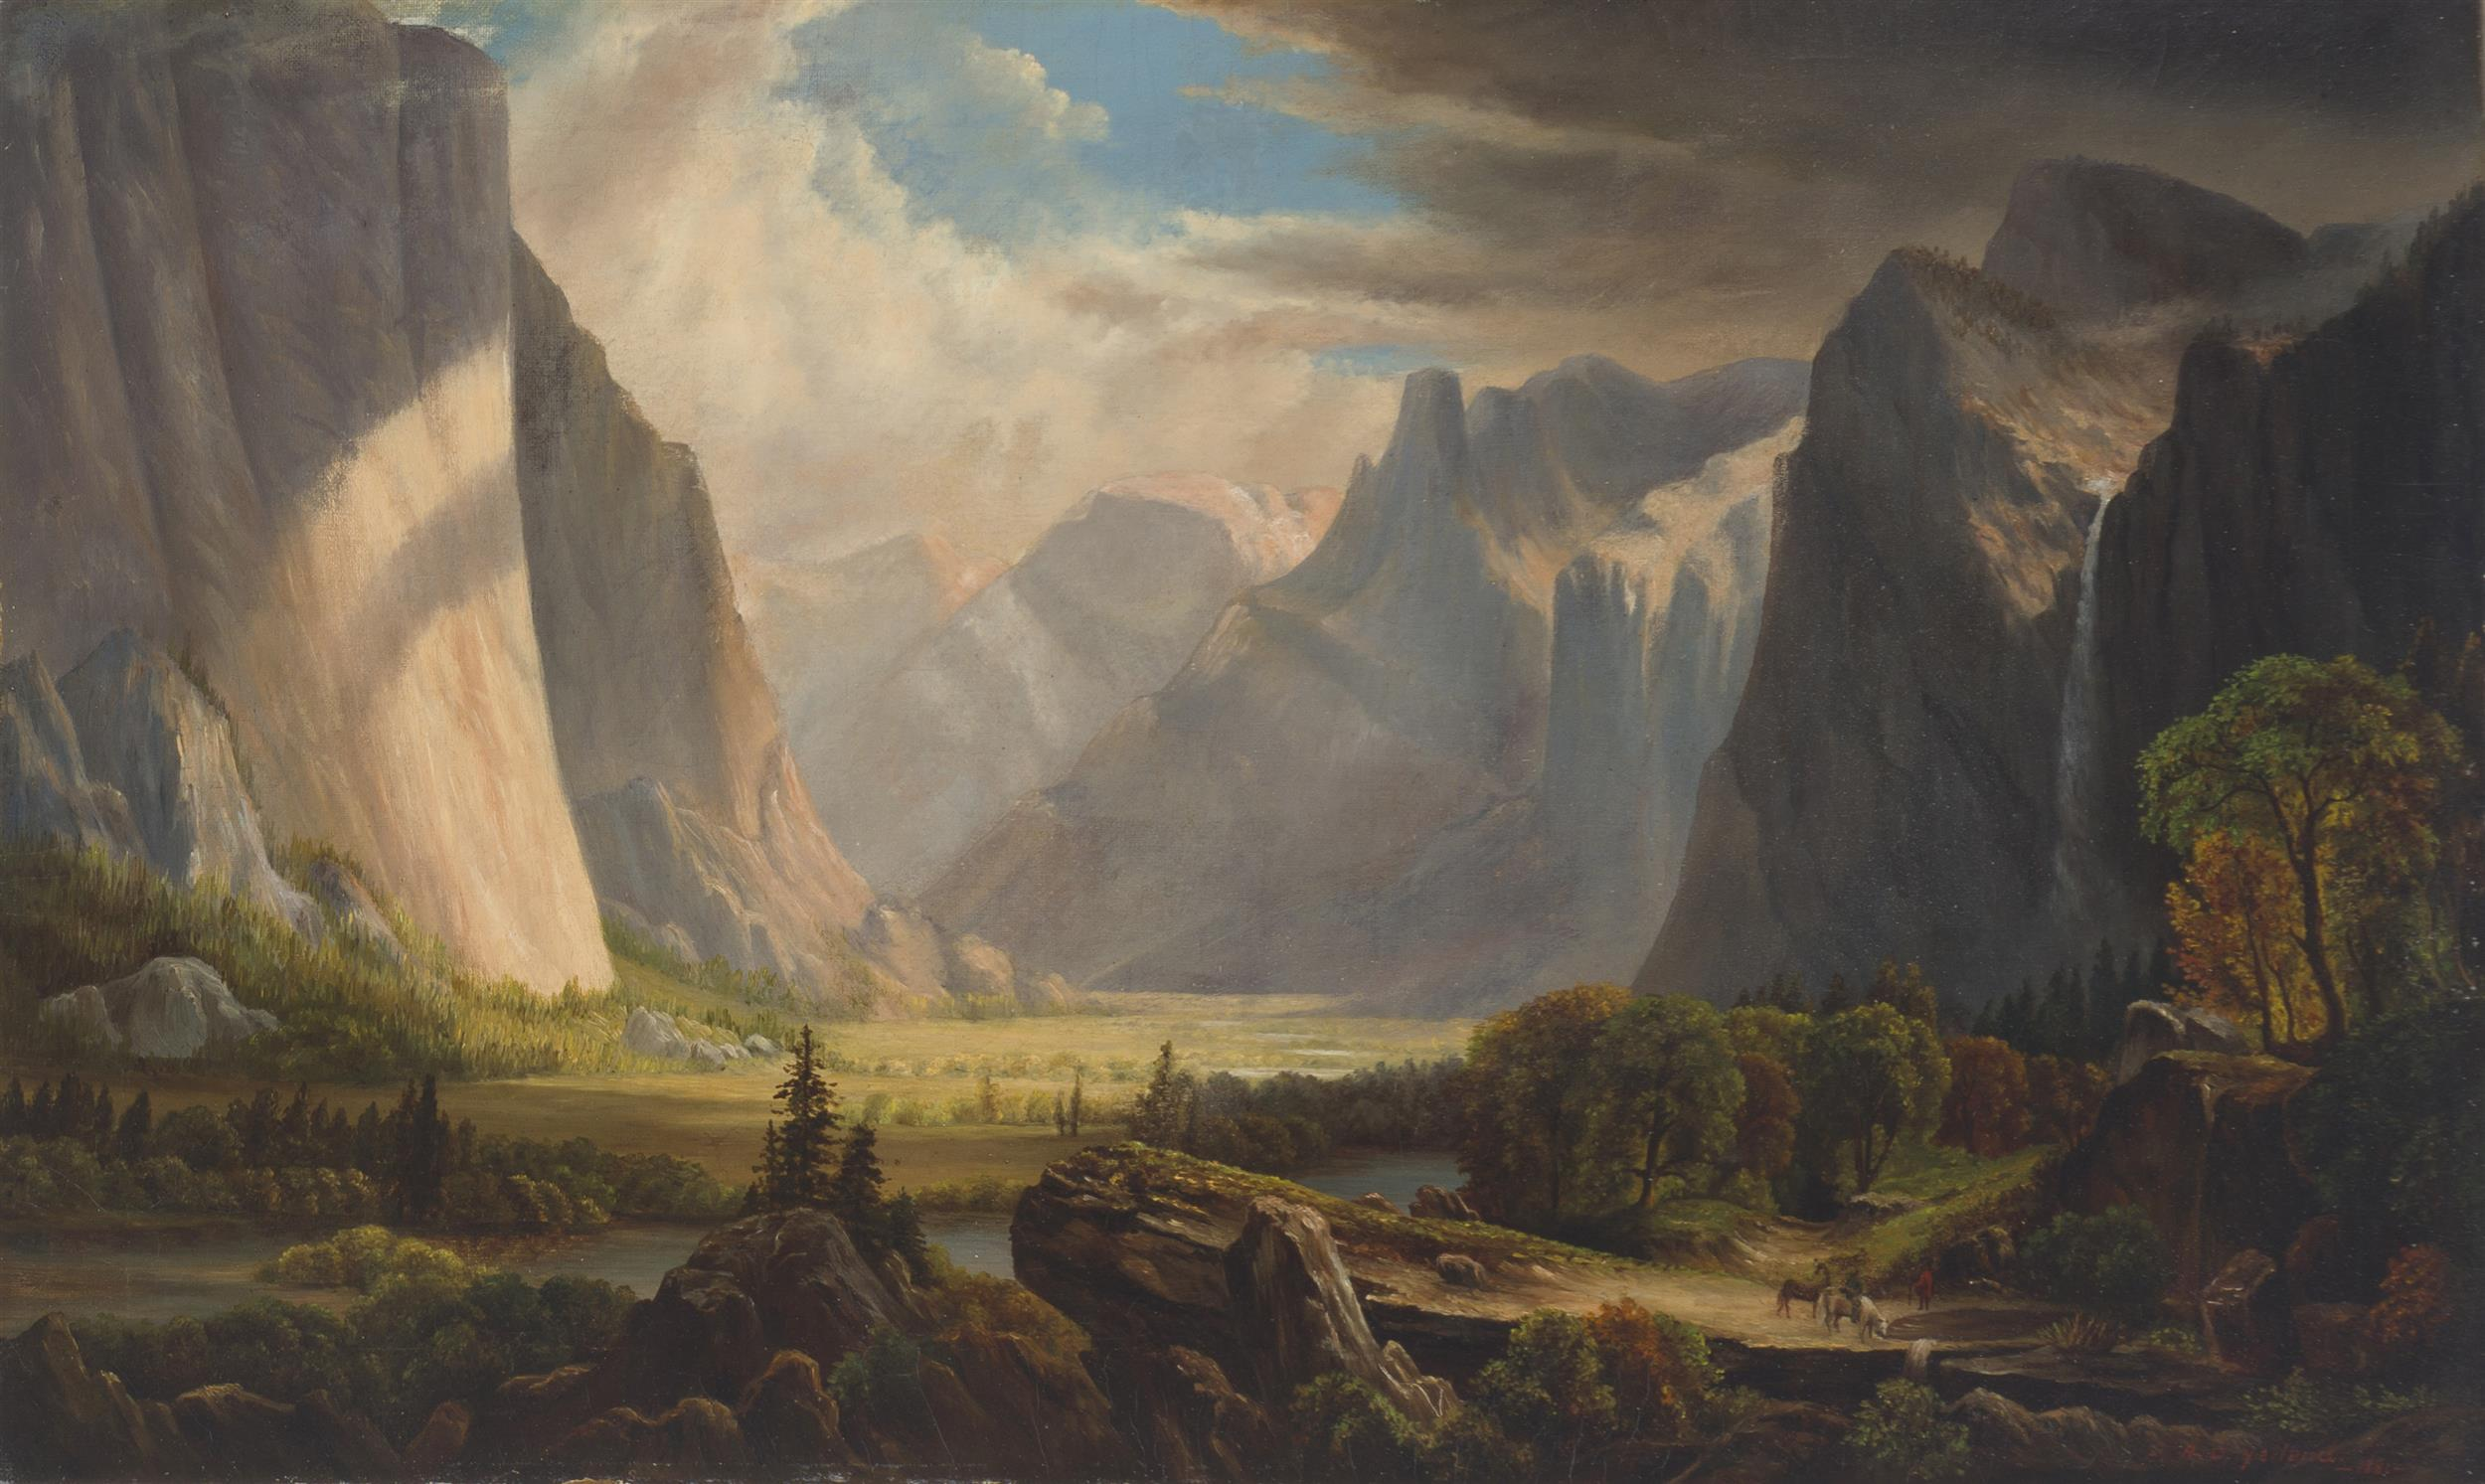 """Raymond Dabb Yelland, (1848-1900 Oakland, CA), Yosemite Valley with figures and horses, 1881, Oil on canvas, 16.25"""" H x 26.75"""" W"""